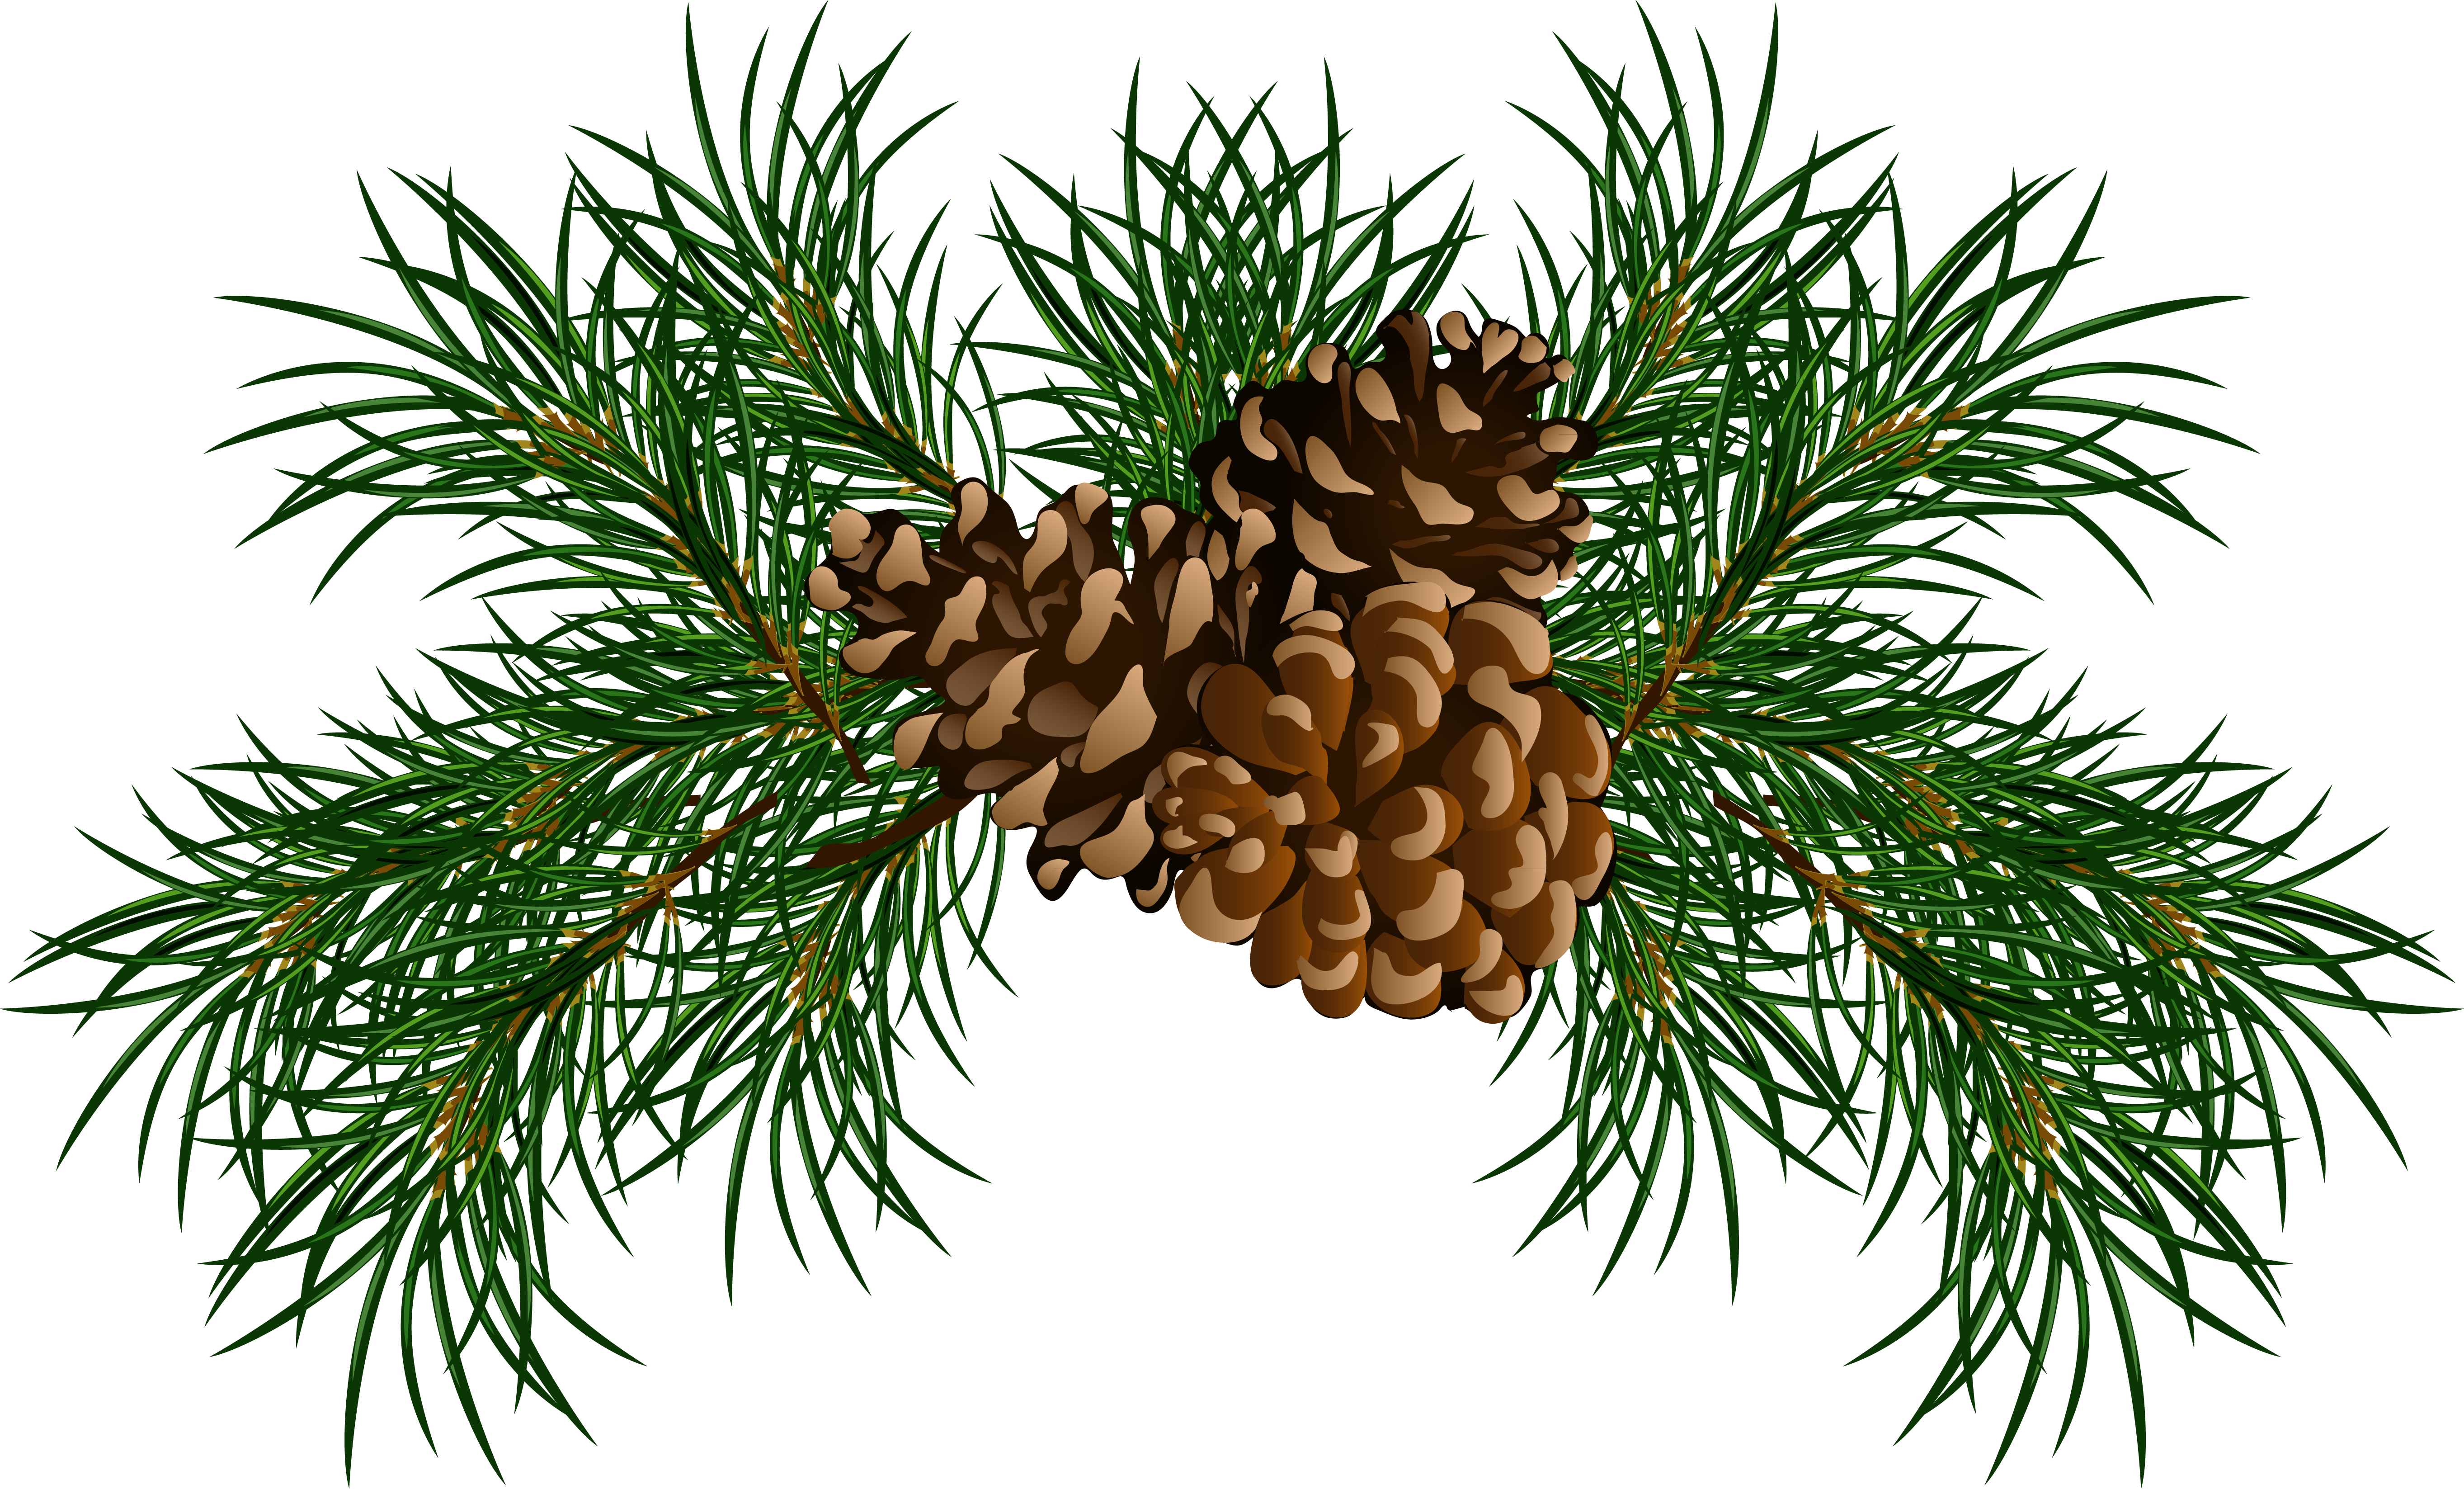 Pine clipart #4, Download drawings